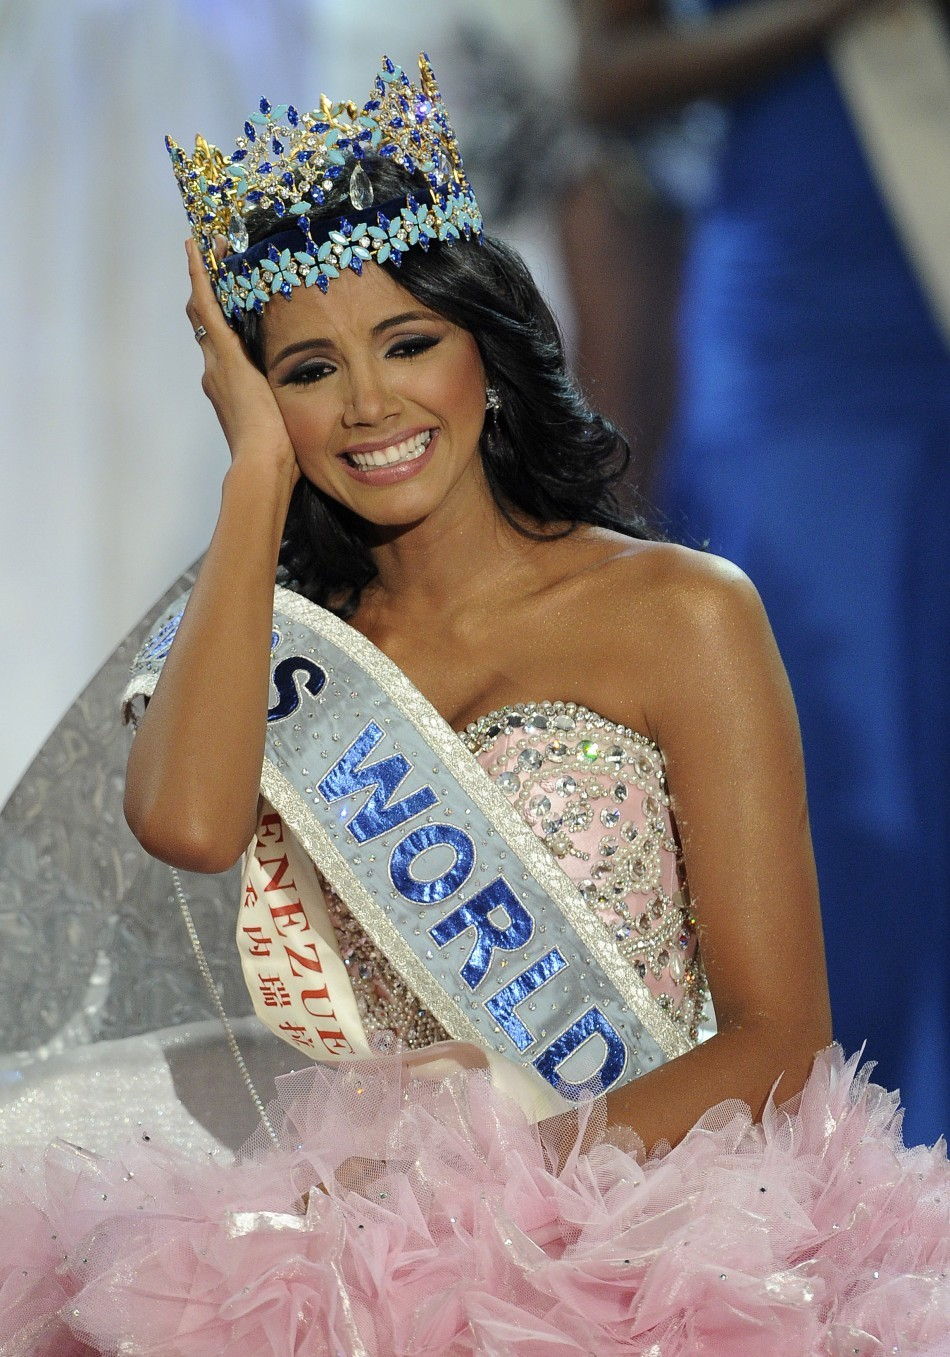 Miss World 2011: Miss Venezuela, Ivian Sarcos Wins the Crown, Full Coverage [PHOTOS]